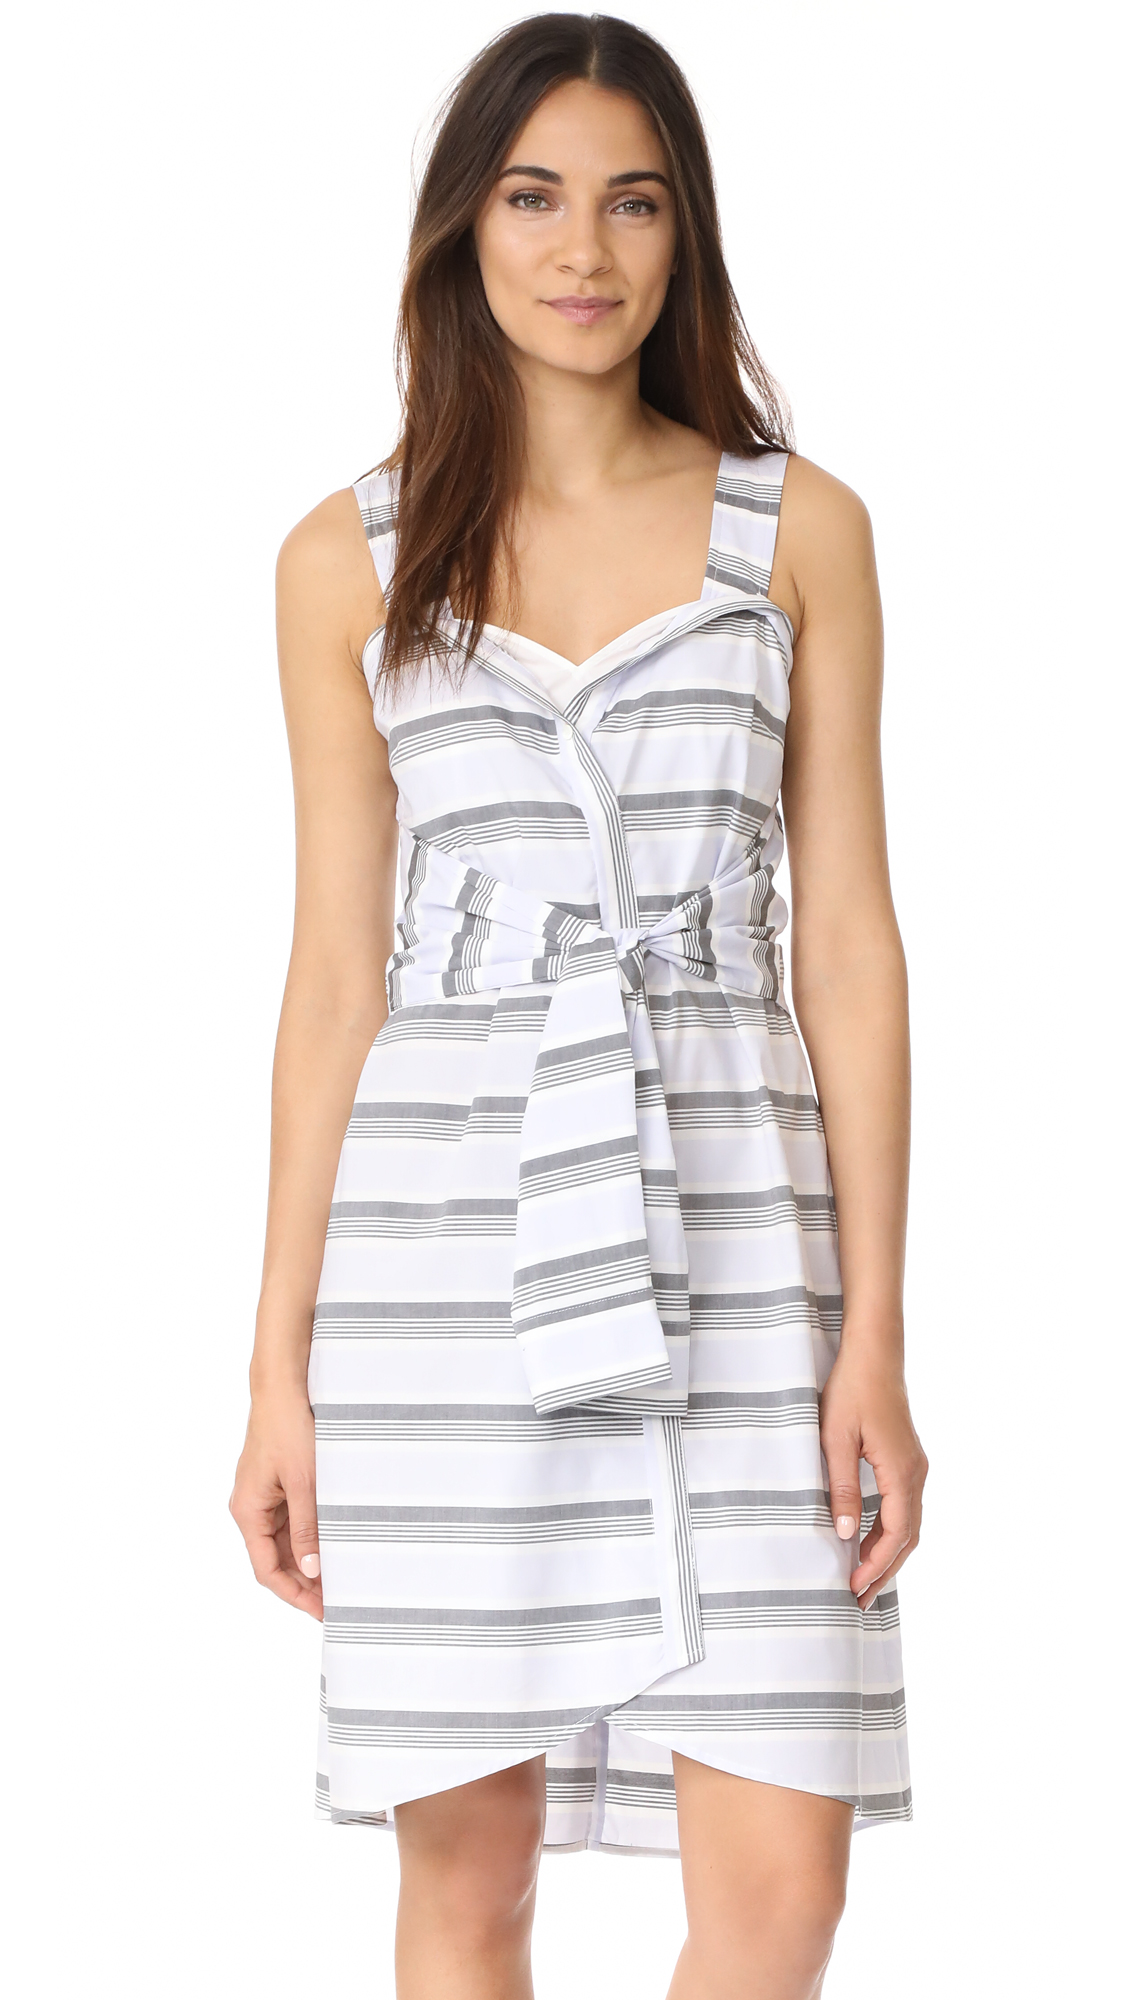 Derek Lam 10 Crosby Sleeveless Tie Front Dress - Sky